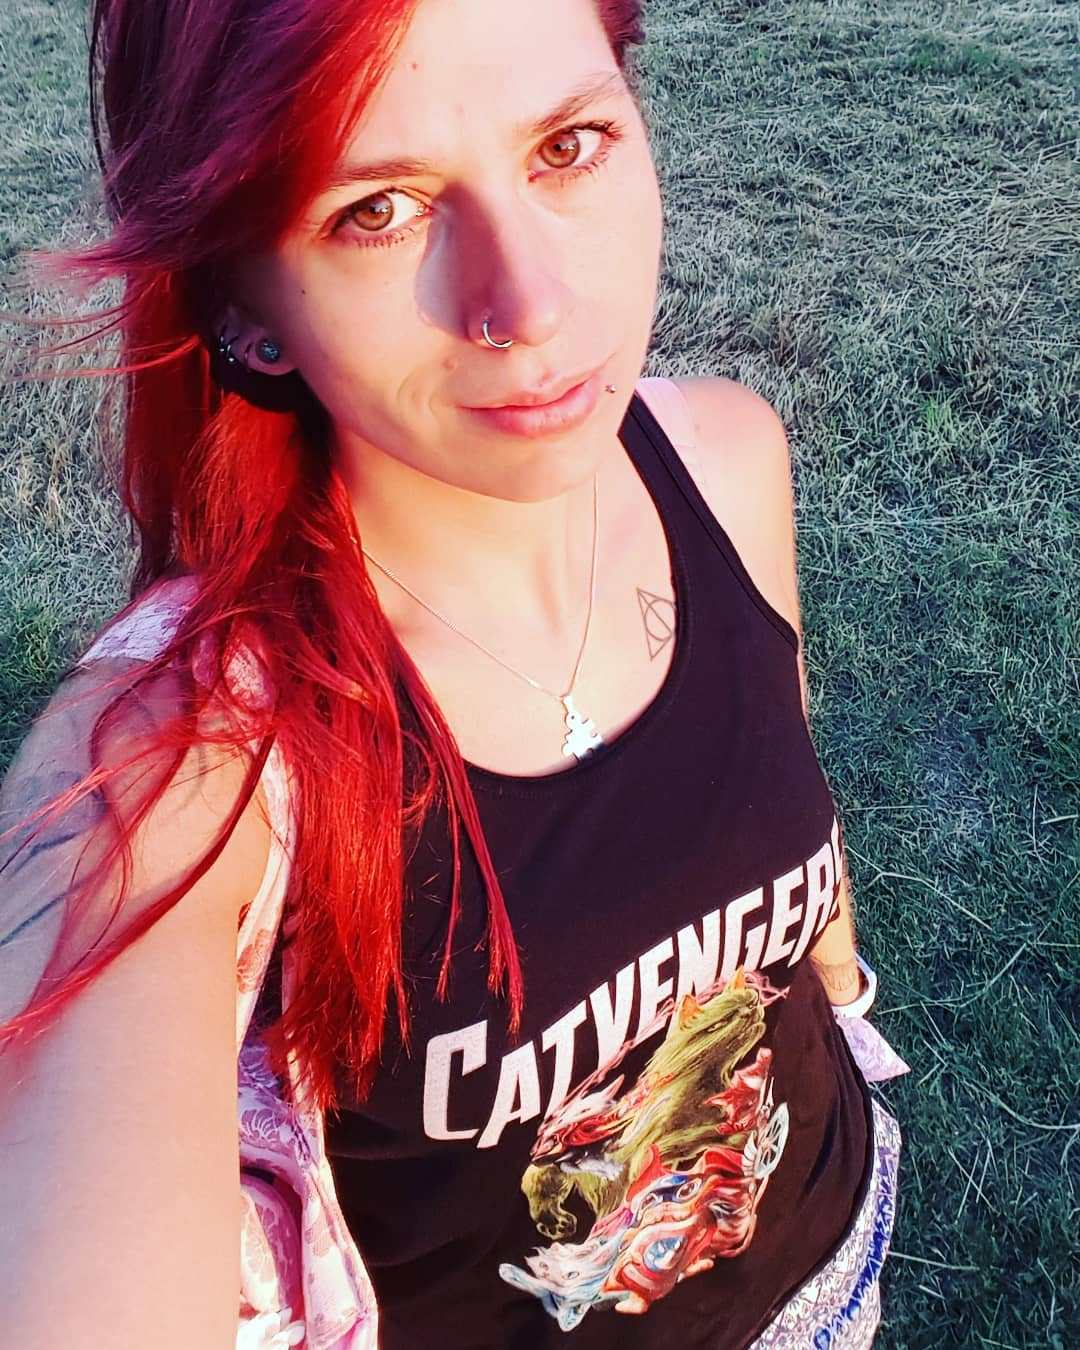 CatVengers Awesome Cats Avengers Shirts photo review